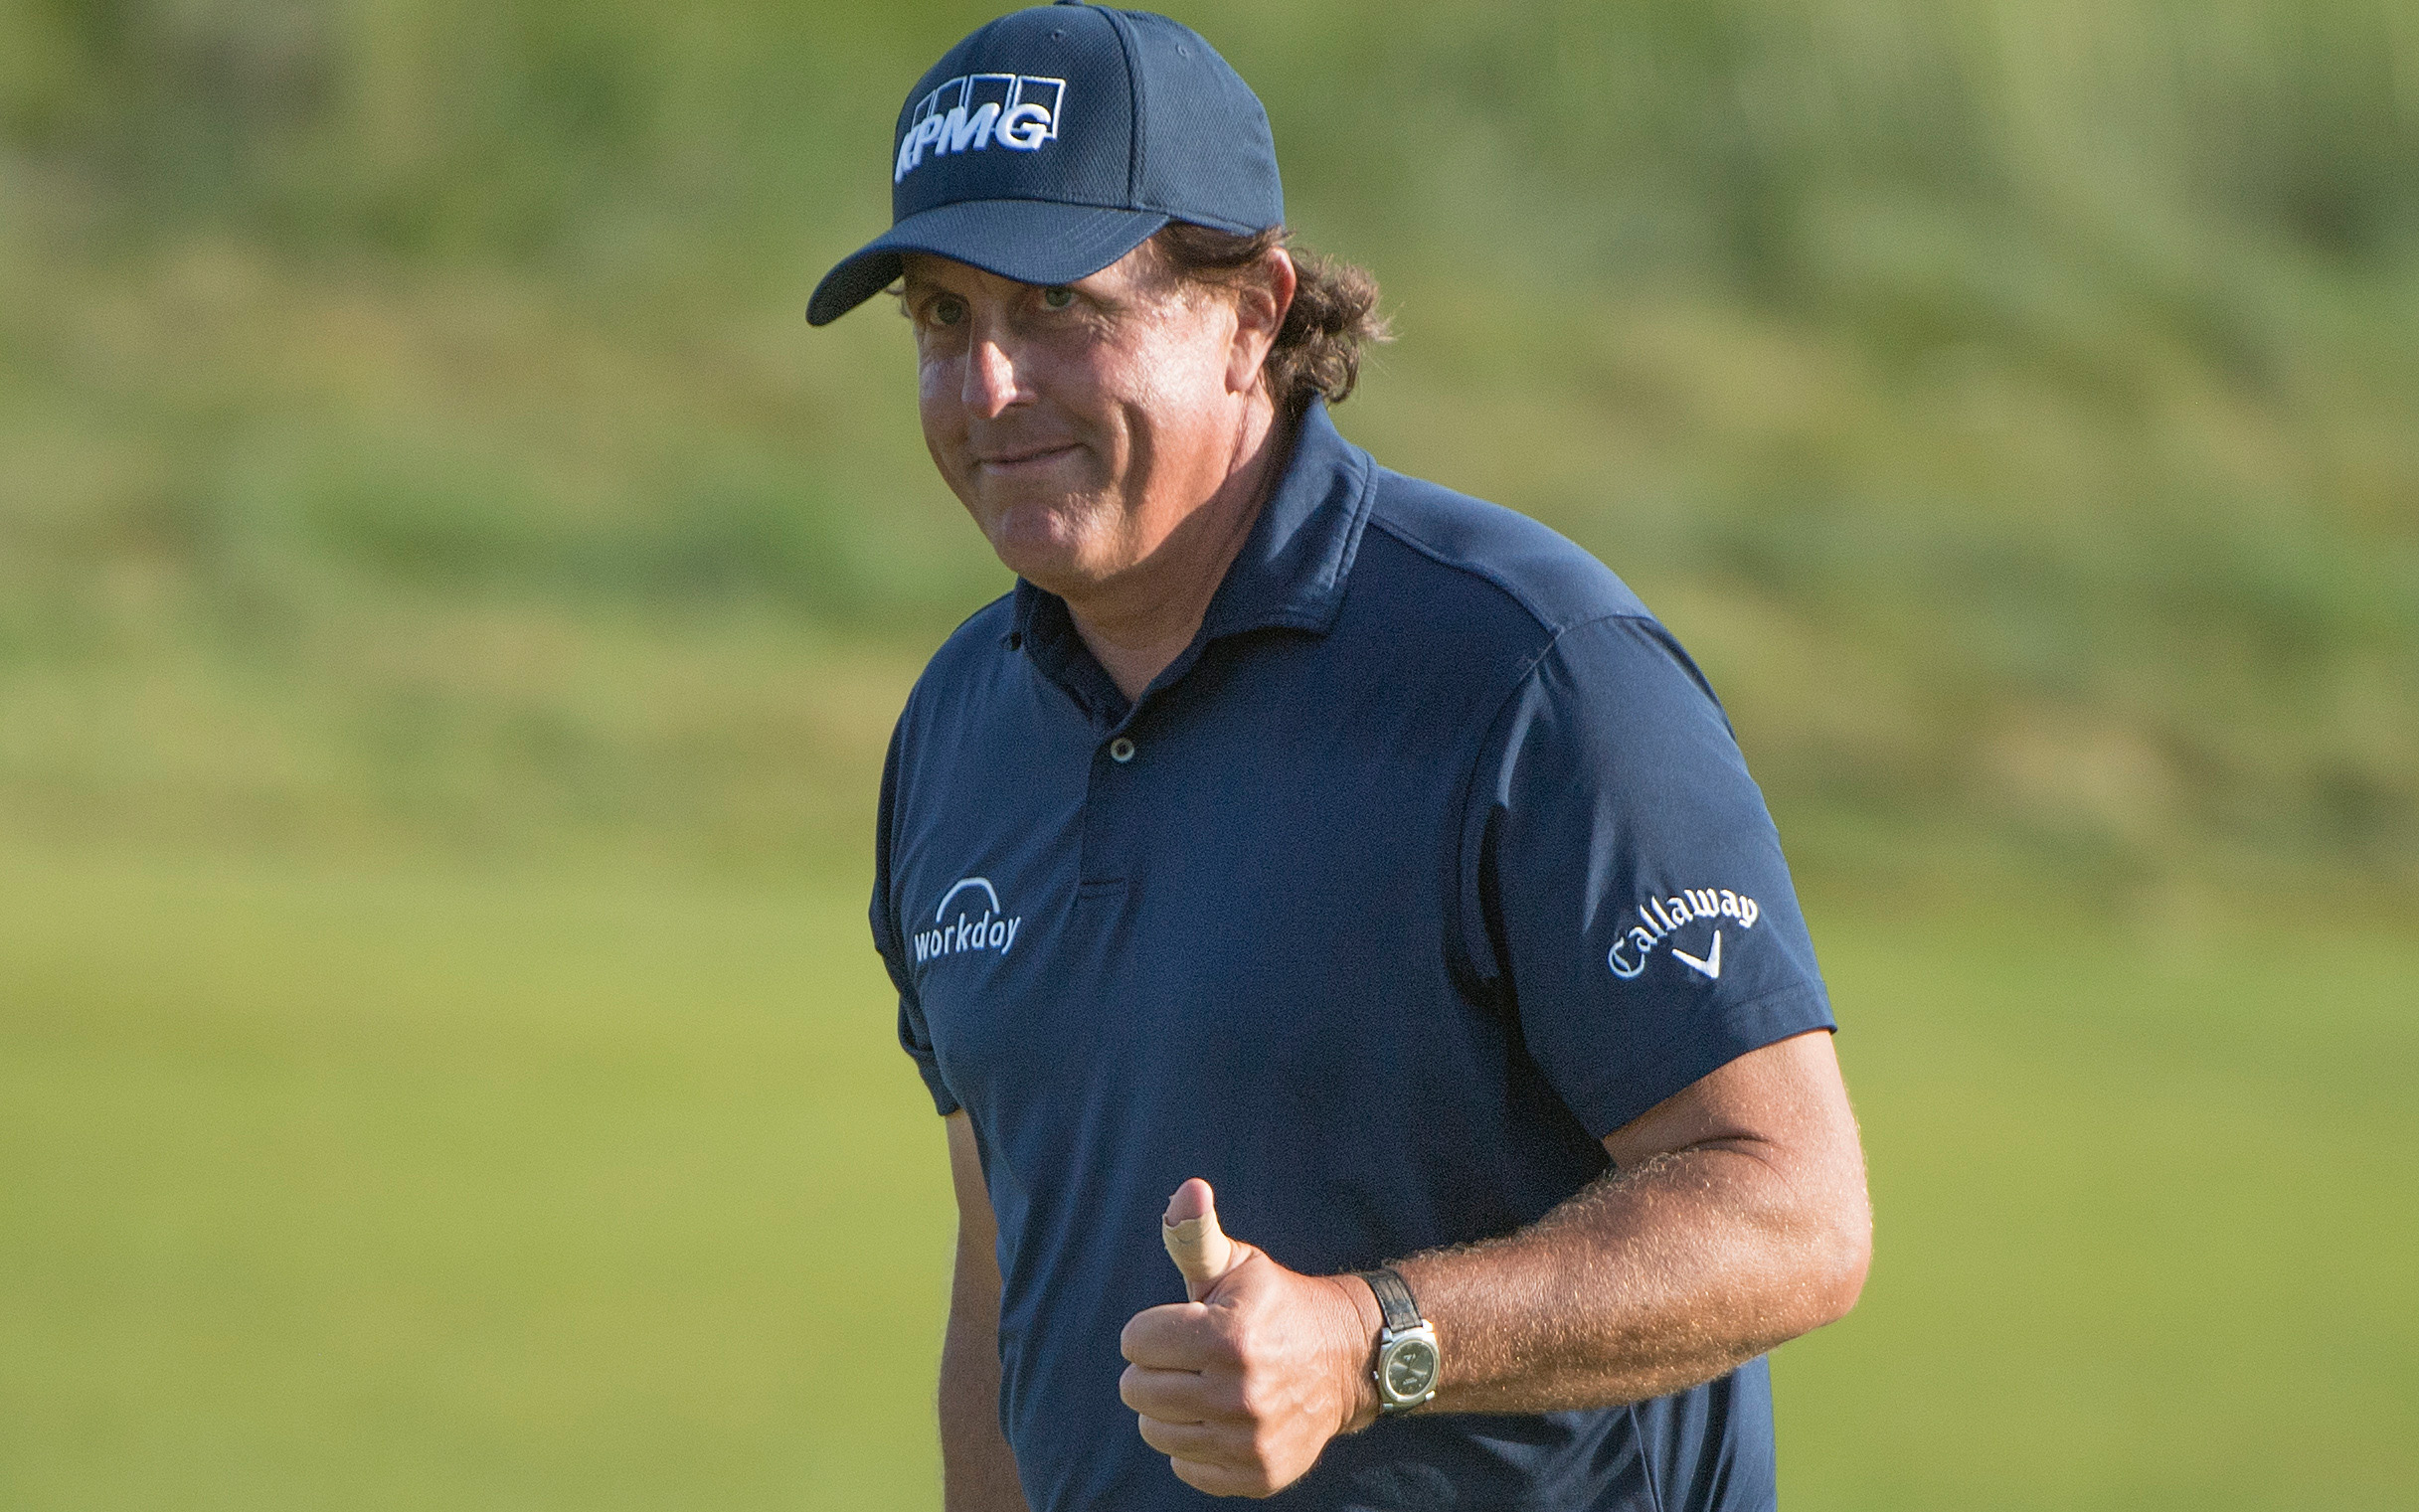 Phil Mickelson: